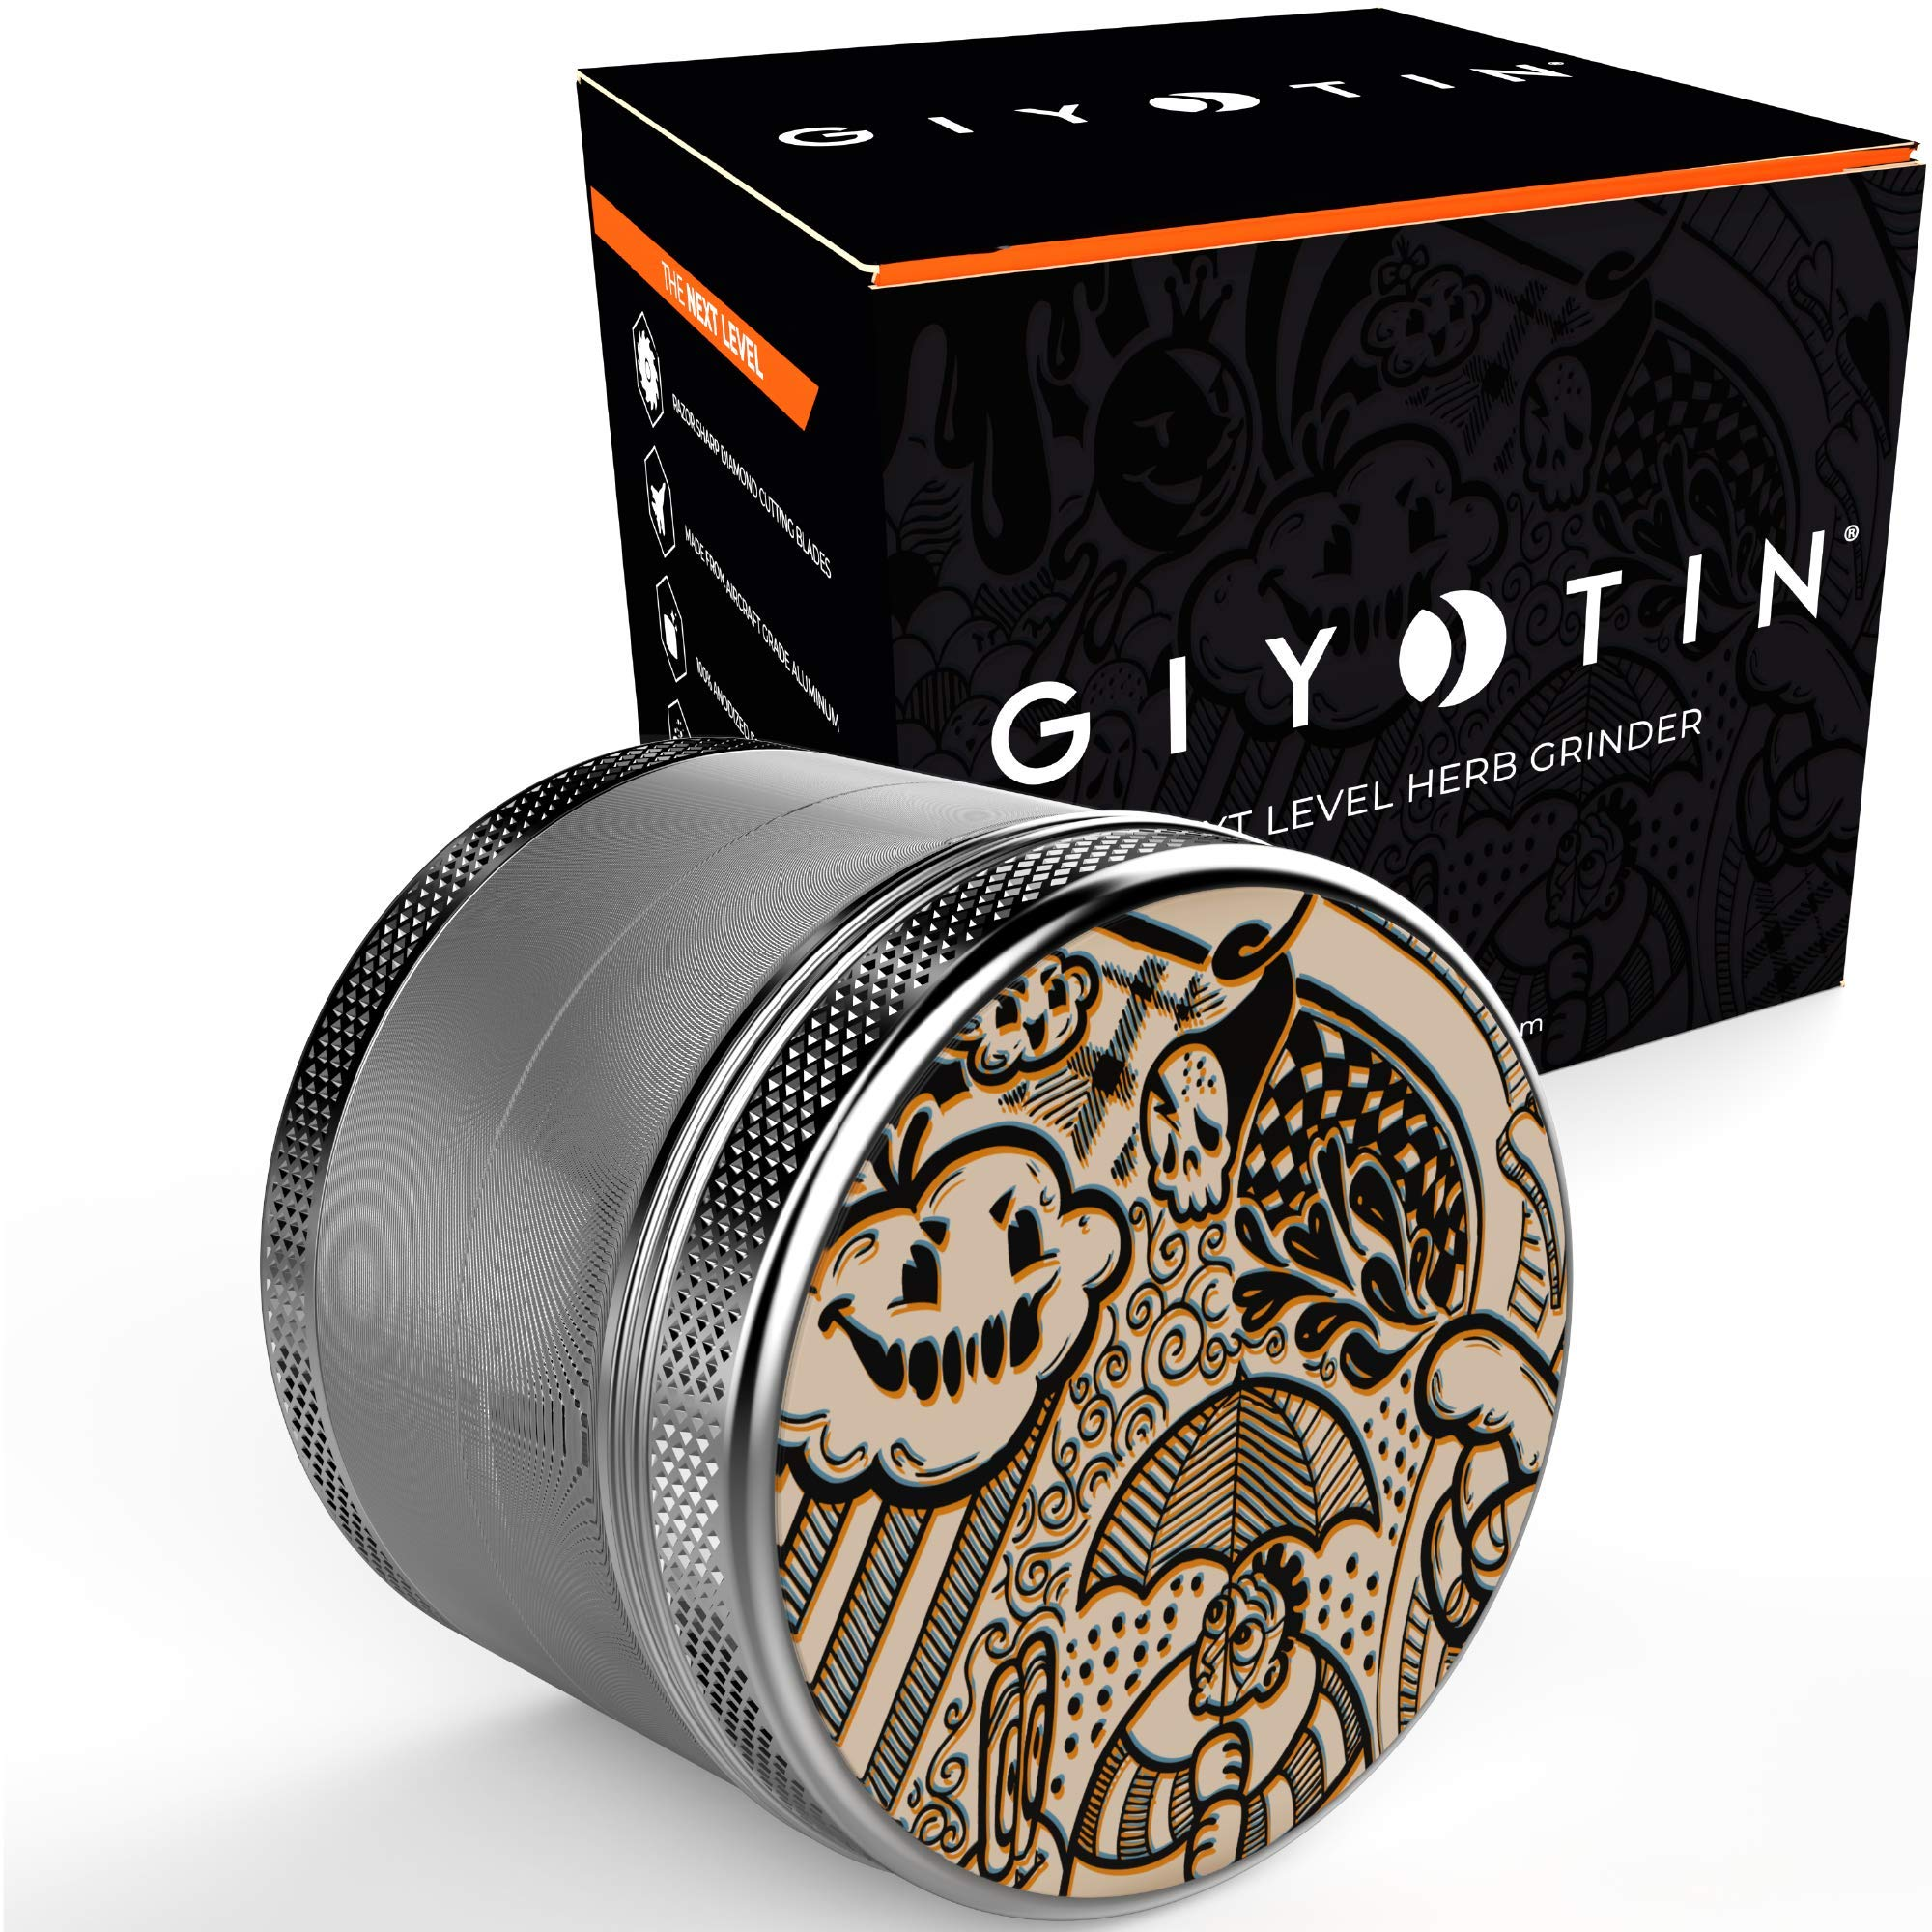 Check out our huge collection of Cannabis Grinders :Tobacco grinders,Weed Grinders and much more Grinder related products Hand-Picked just for you from Amazon.com